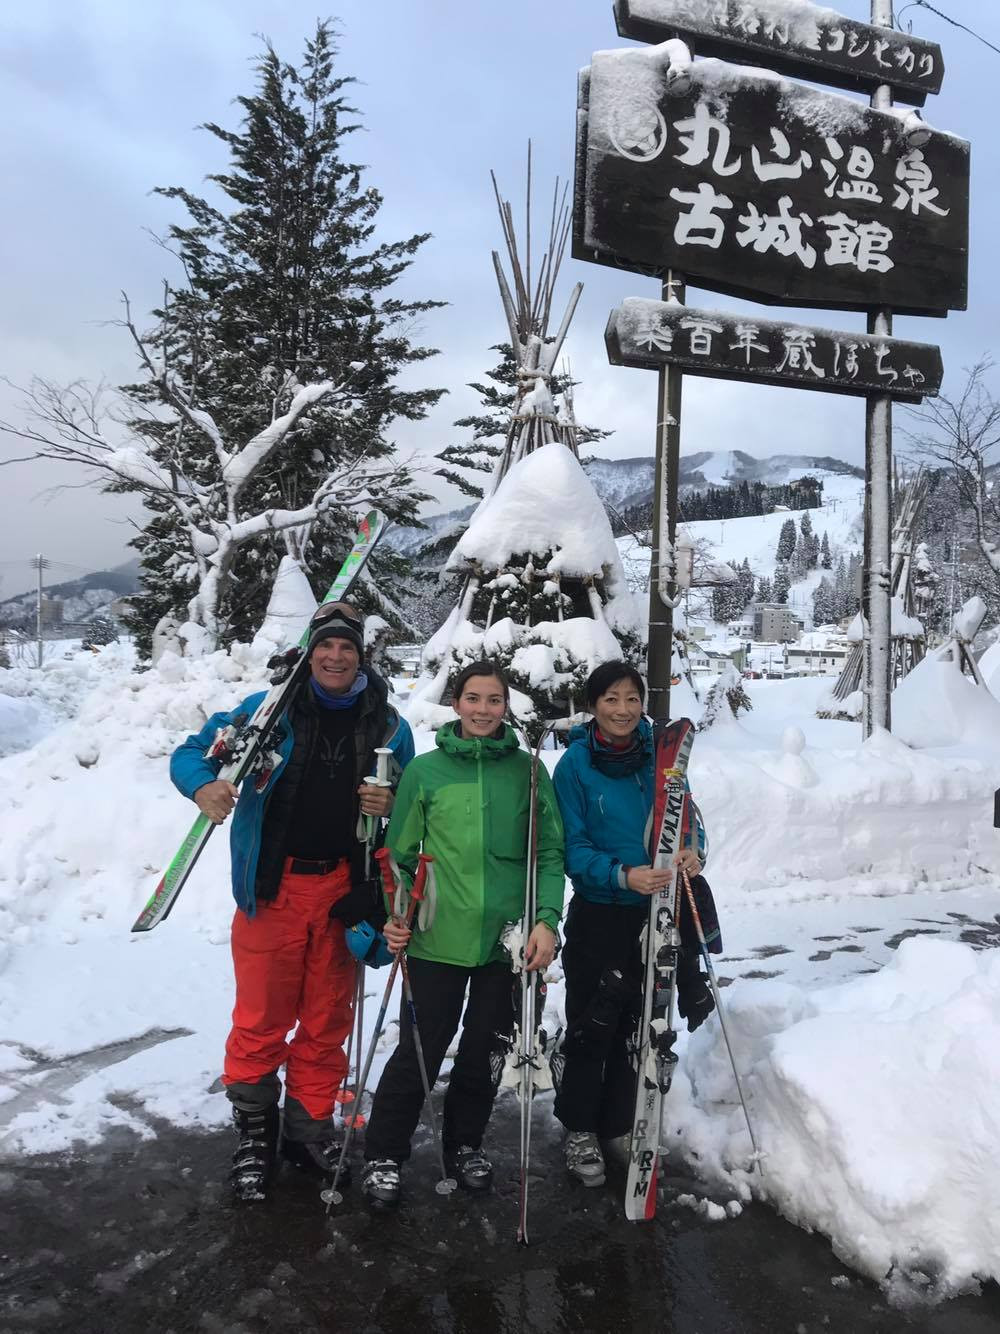 Arielle skiing with family in Japan.